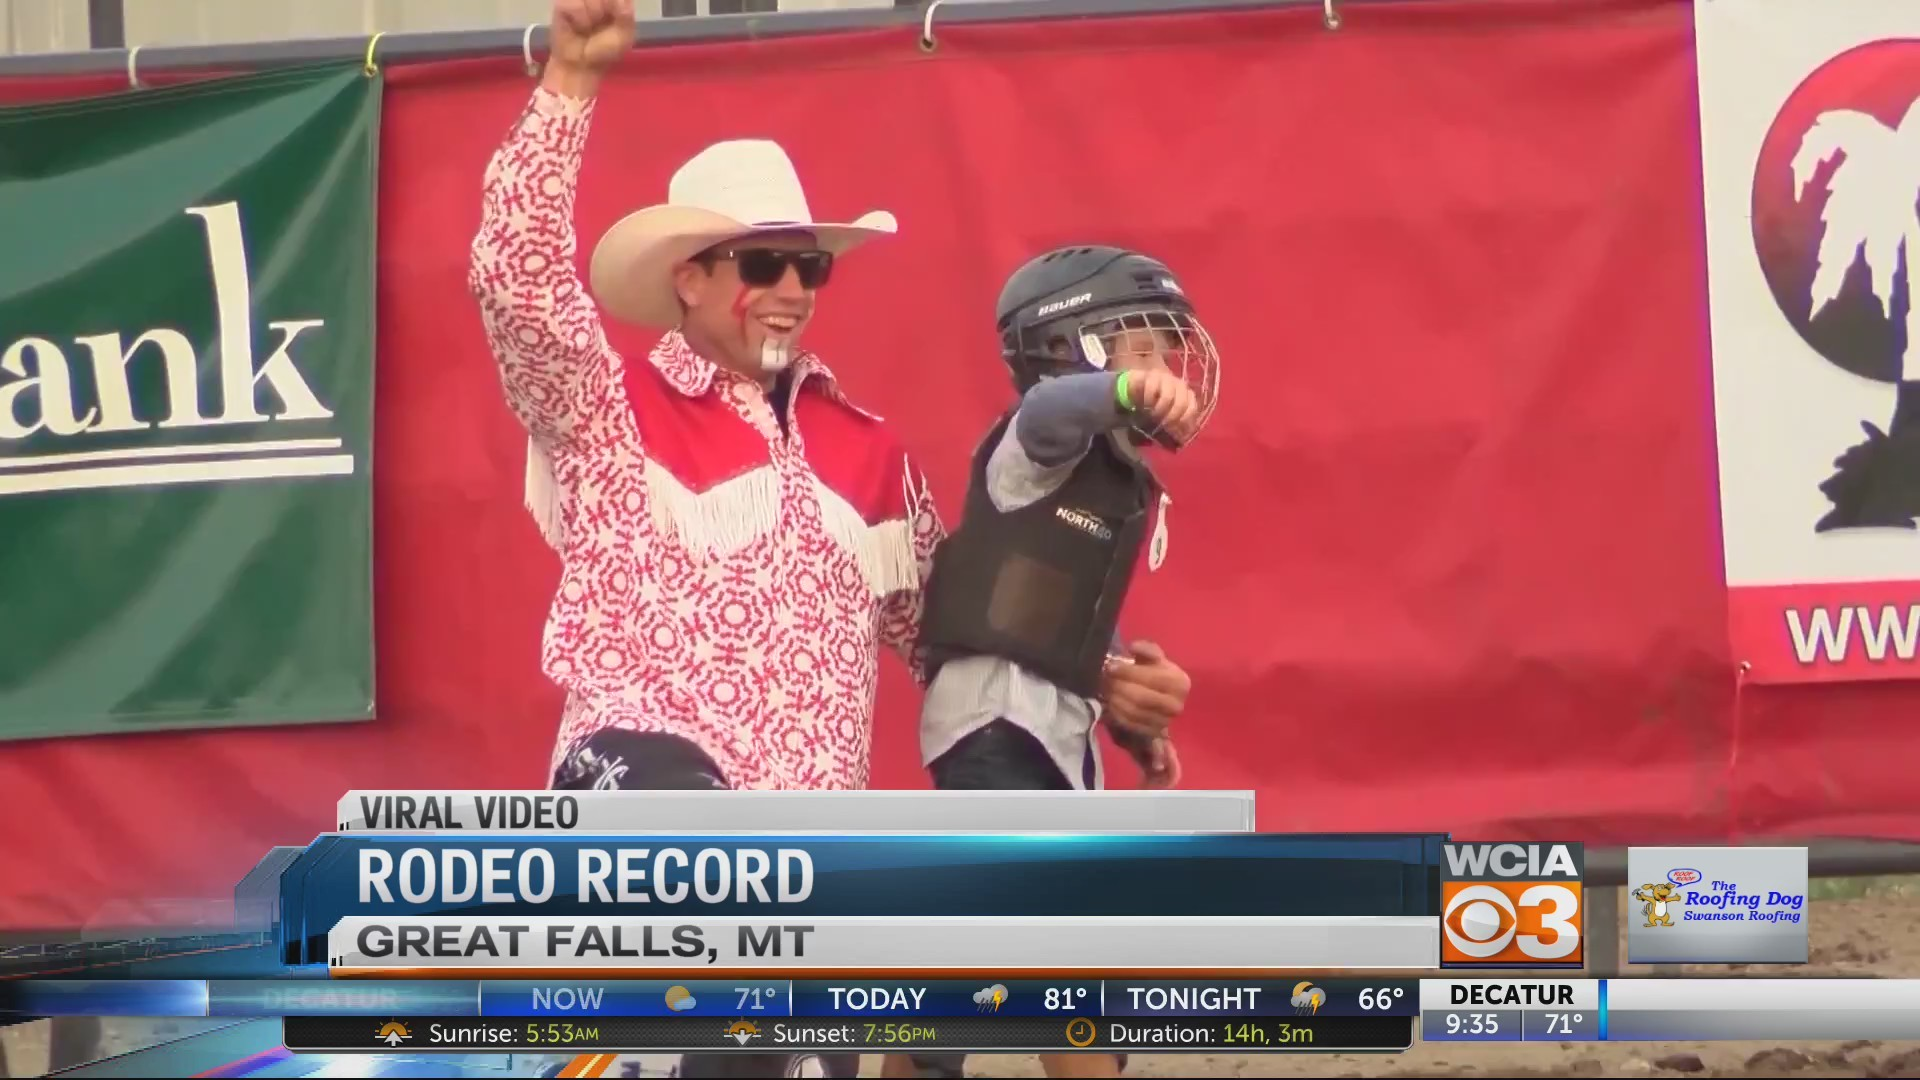 Rodeo Record